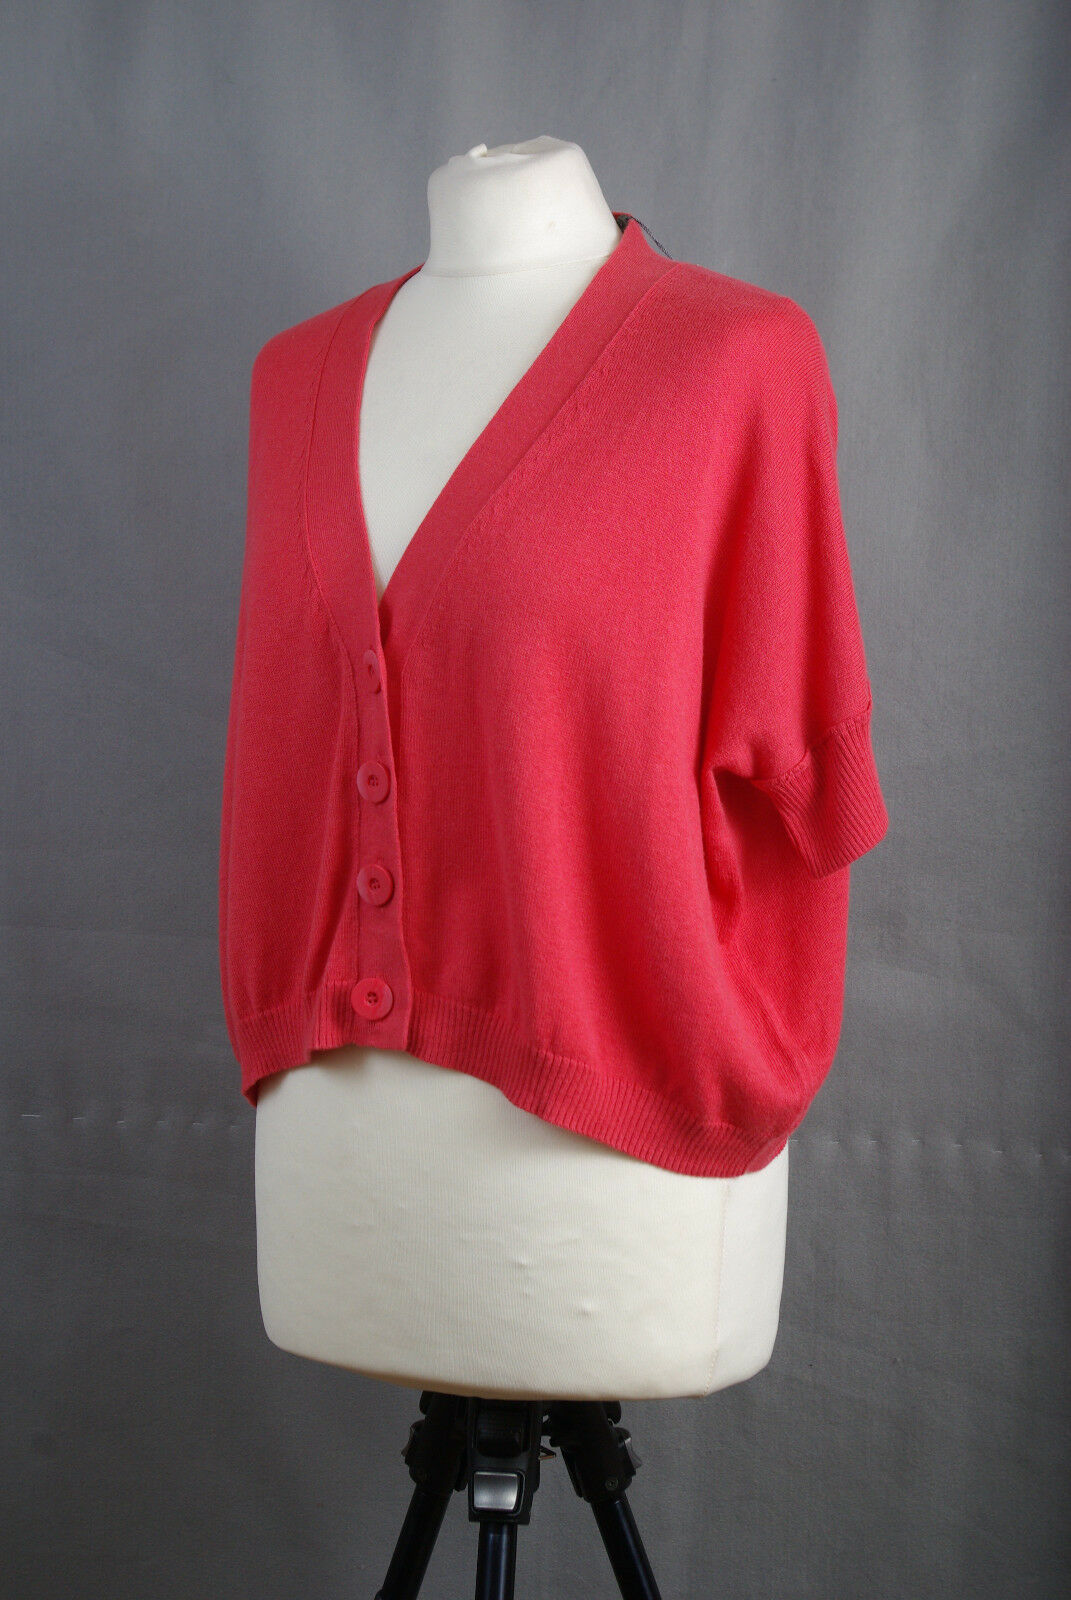 L147 01 BNWT Pied a Terre Nomad Pomegrante Cotton Cashmere Oversize Cardigan,10